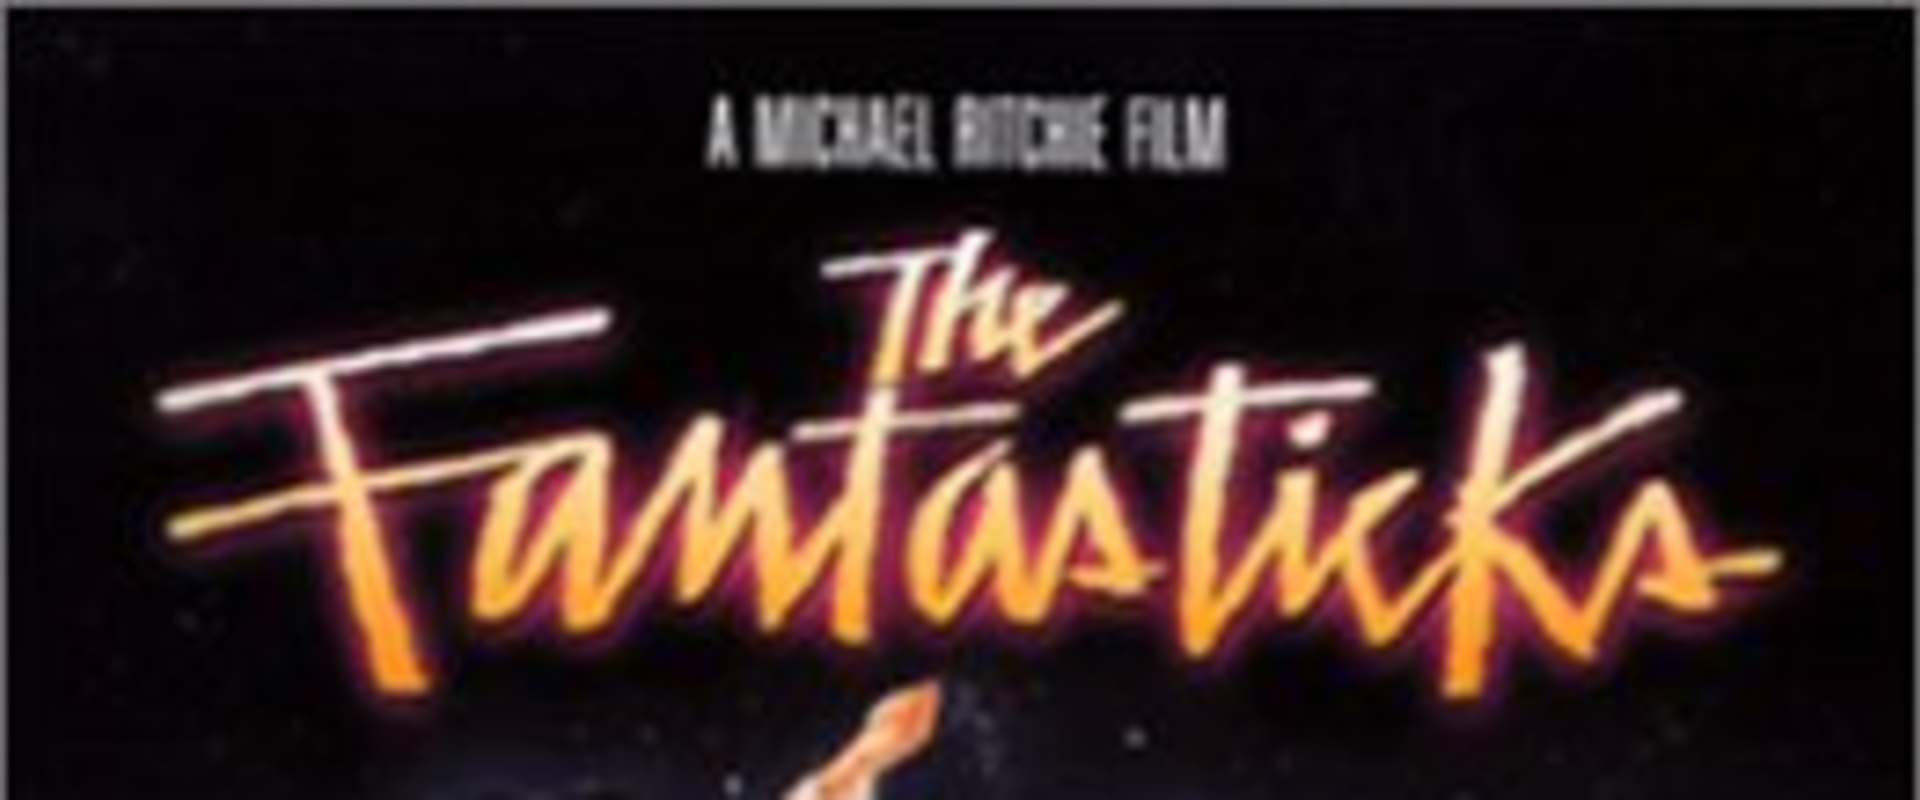 The Fantasticks background 2